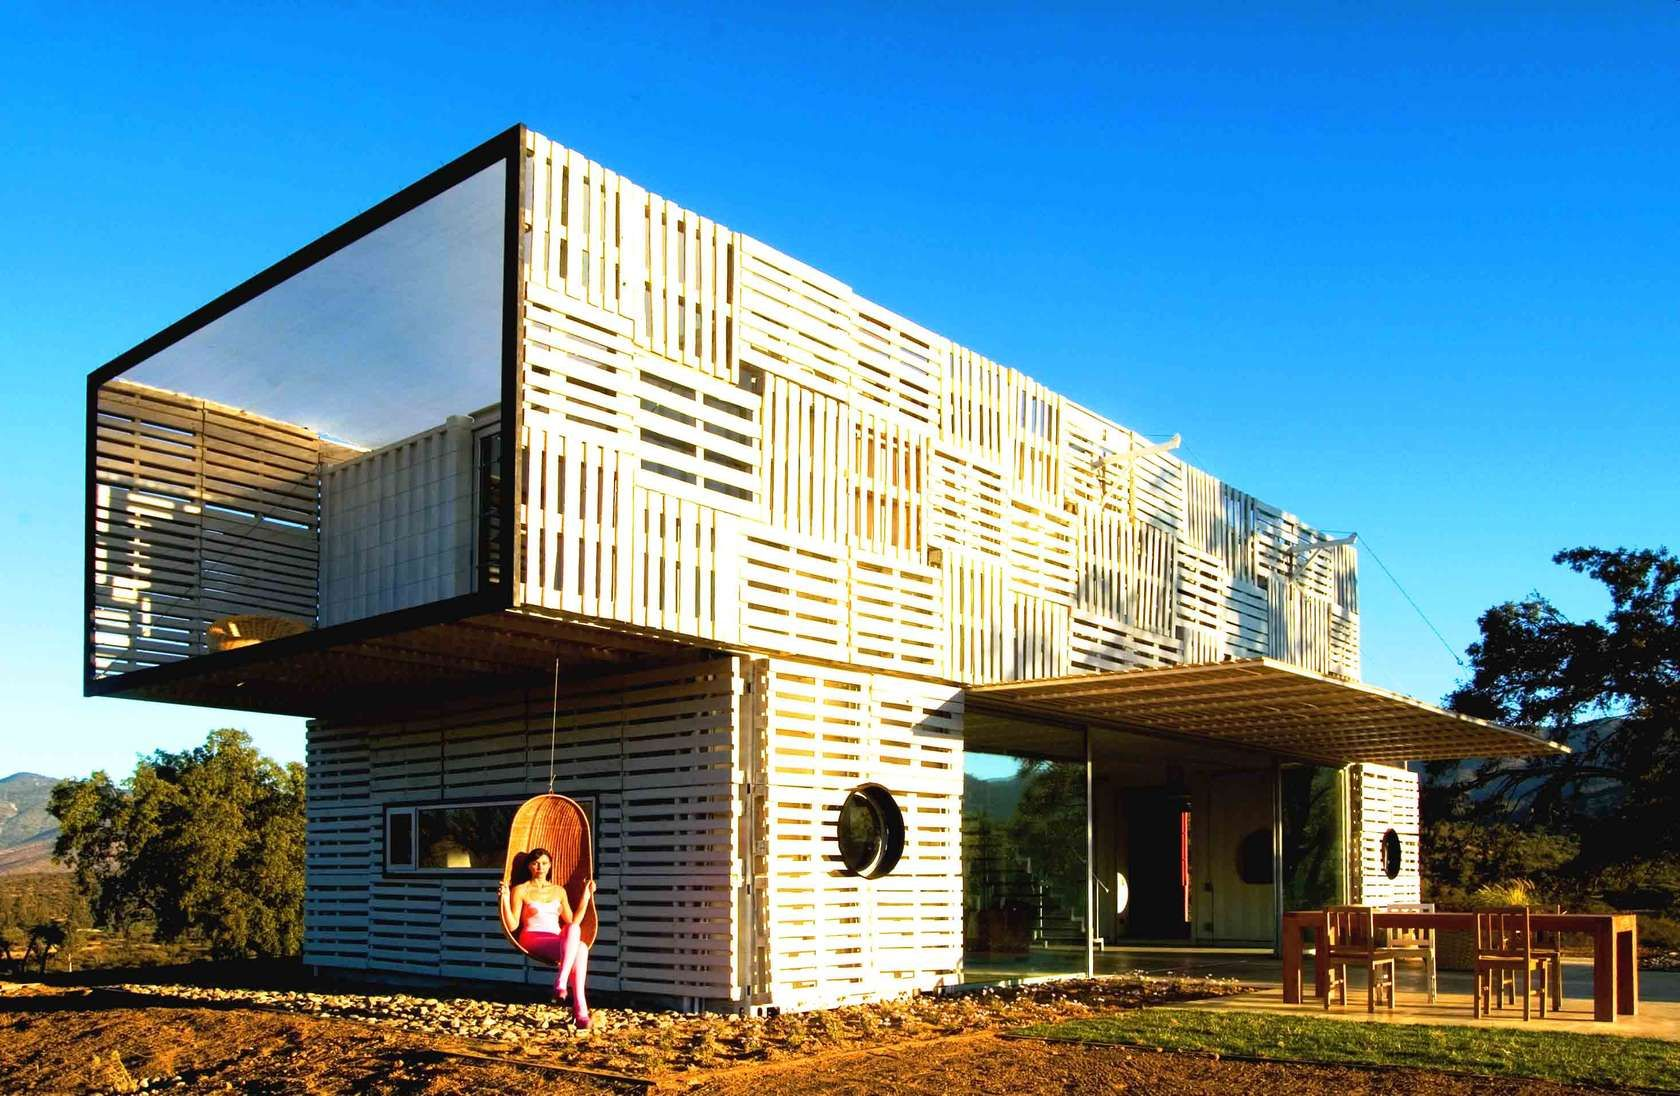 container home designers%0A Infiniski designs and builds ecofriendly houses and buildings and  cocreated this Iconic Shipping Container Home  Manifesto House by James  u      Mau